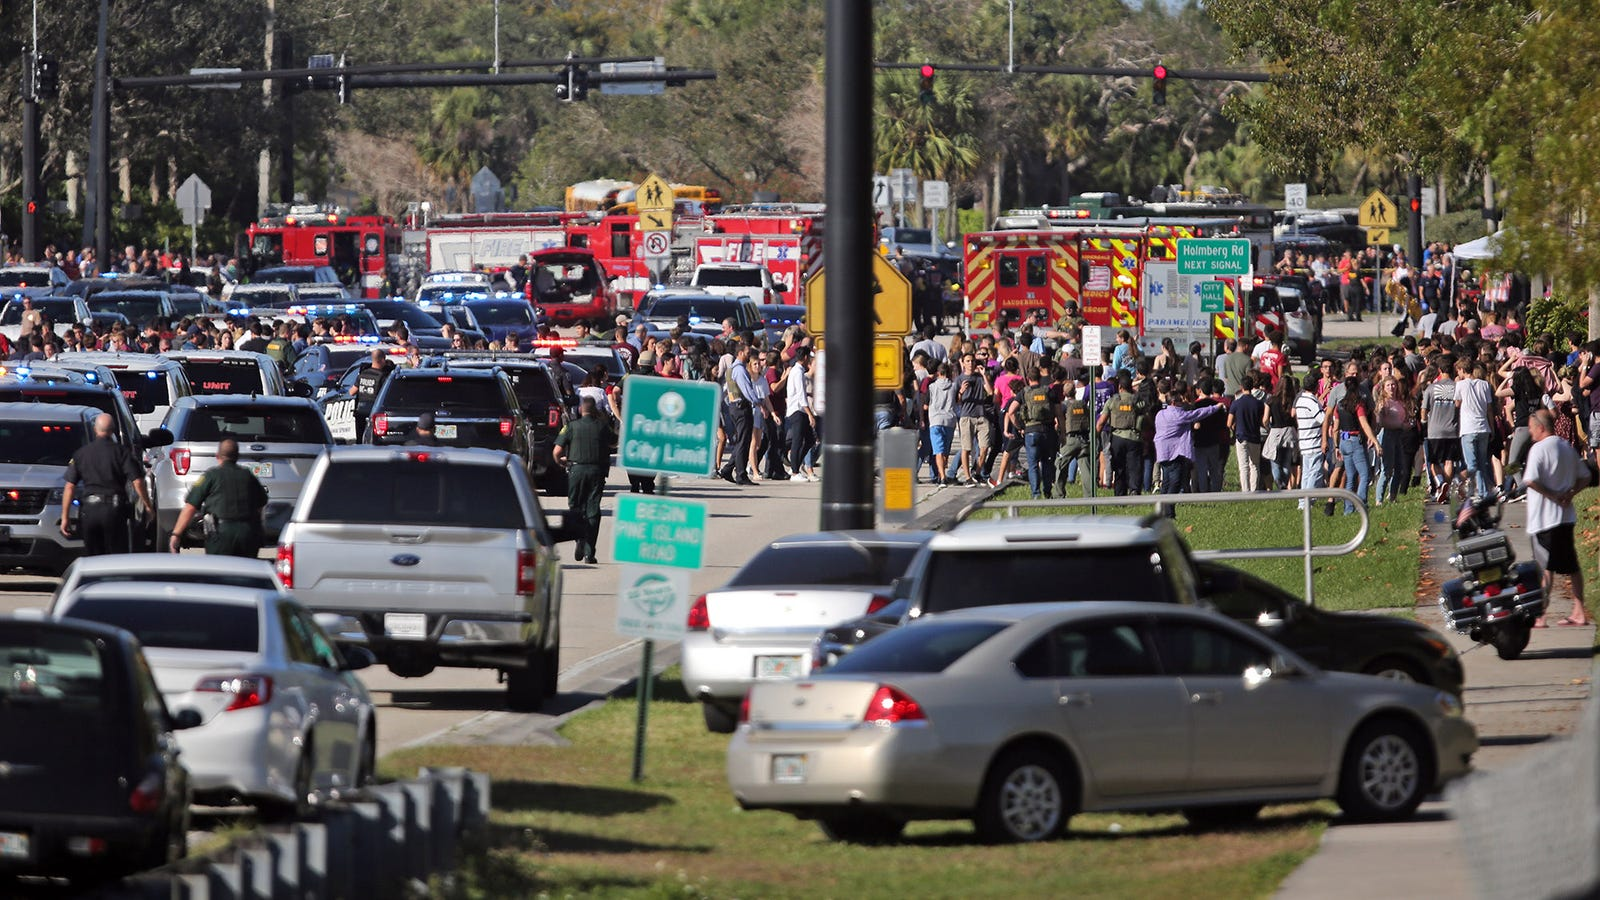 'No Way To Prevent This,' Says Only Nation Where This Regularly Happens